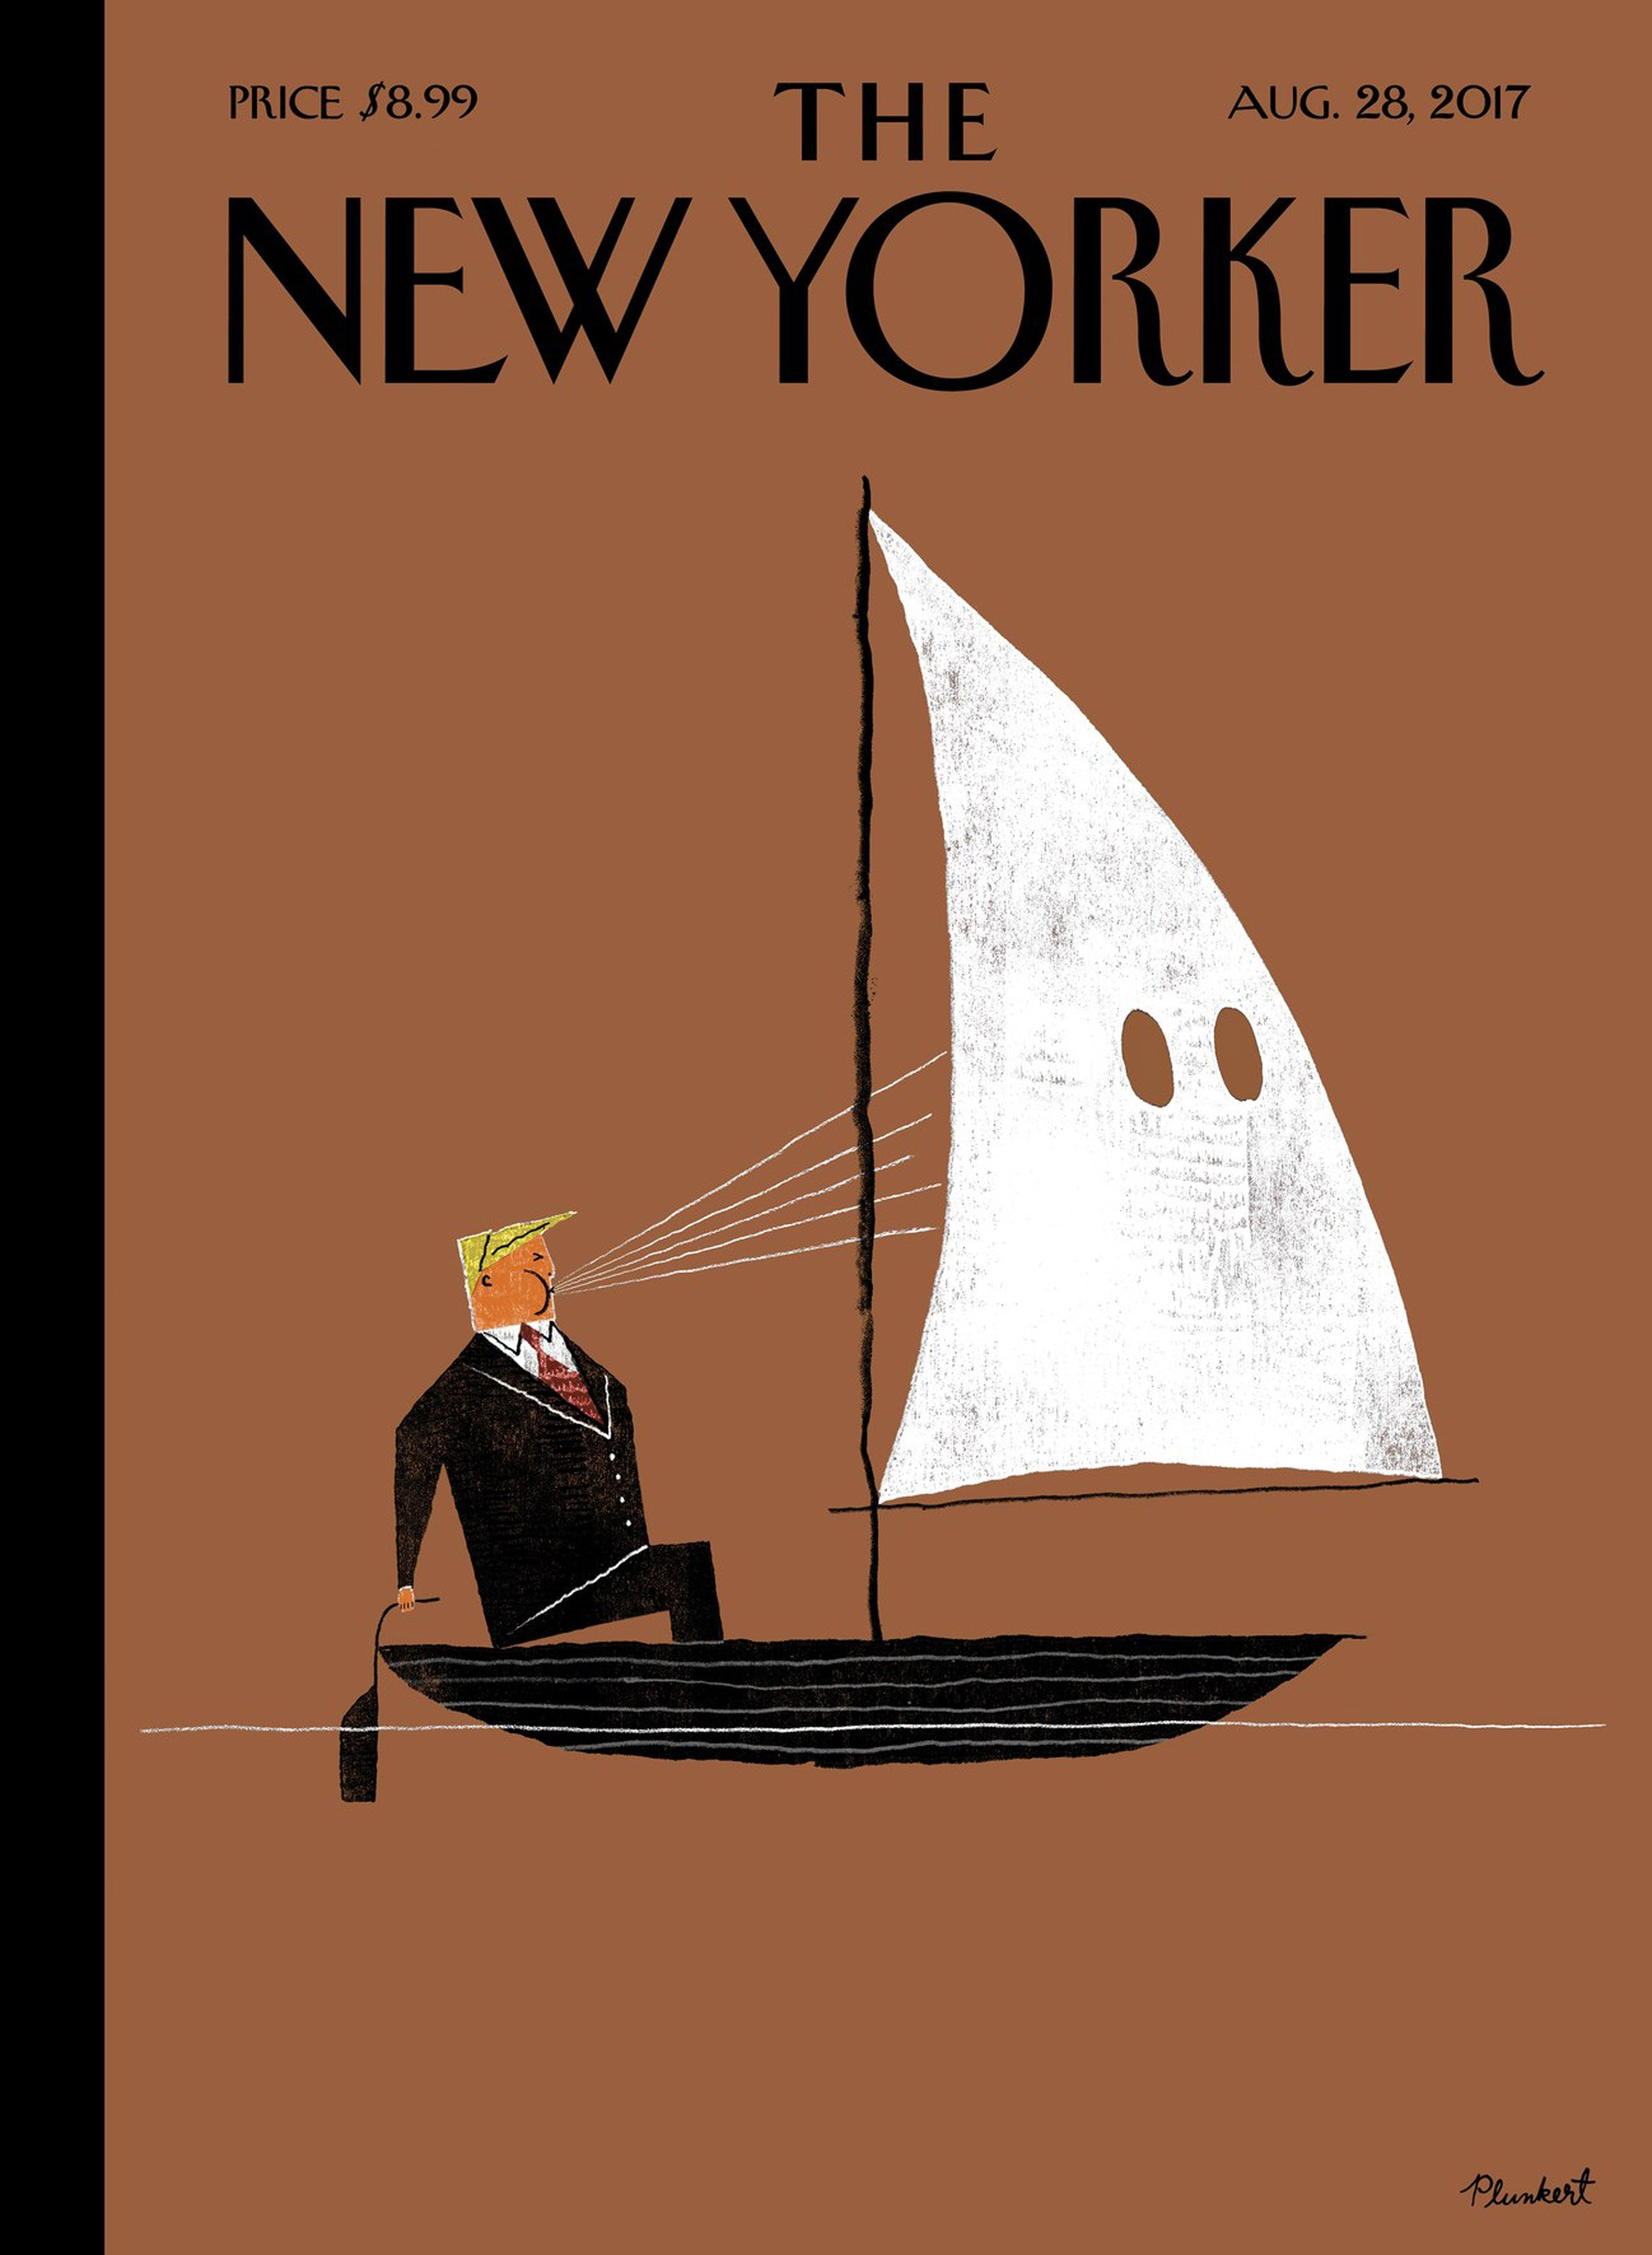 The New Yorker, Economist and Time reflect on rise of race hate in America with illustrated covers